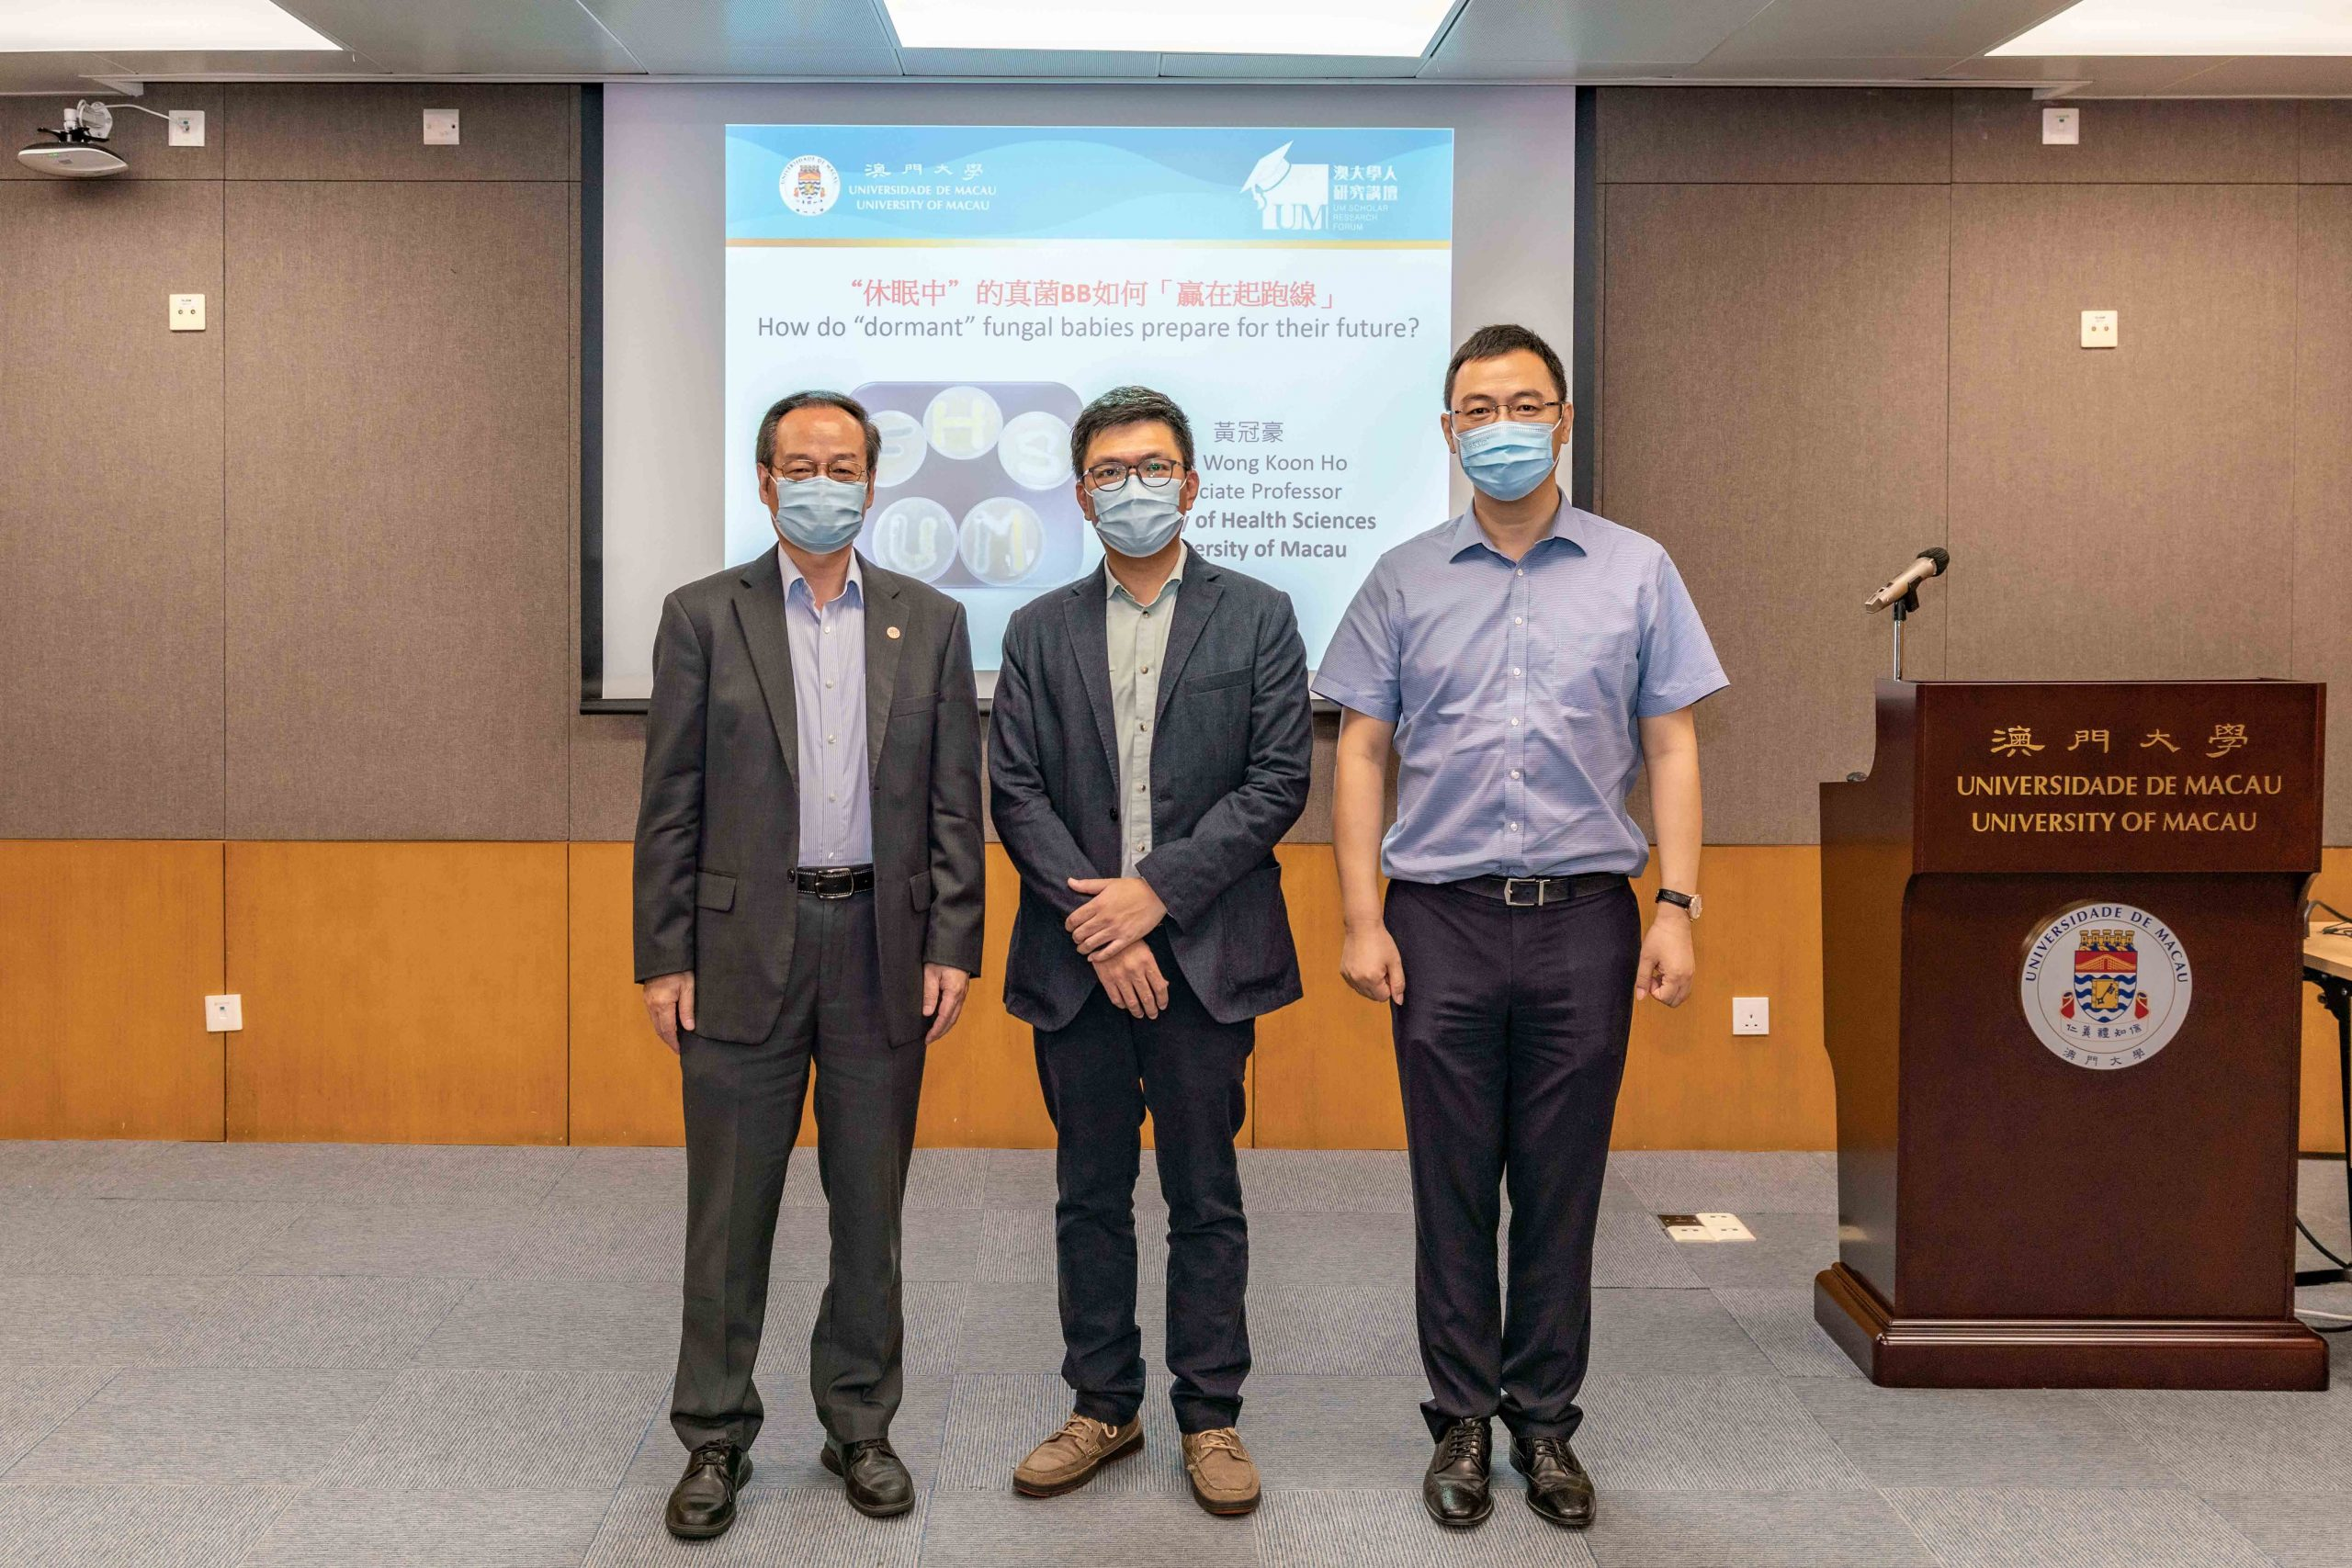 UM holds UM Scholar Research Forum to share new breakthrough in fungal biology